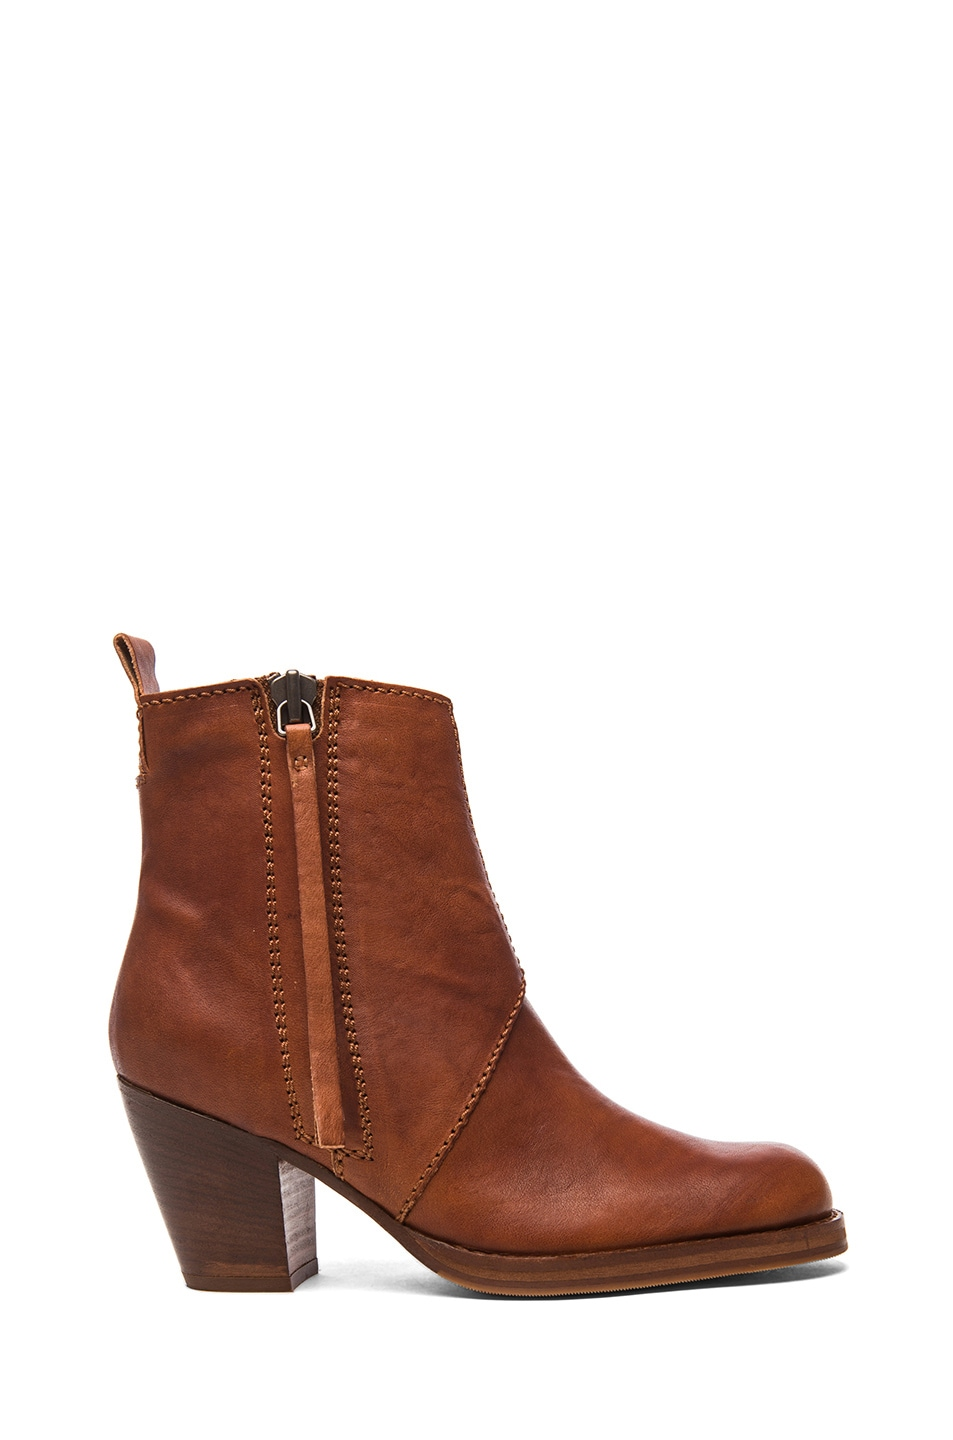 Image 1 of Acne Studios Pistol Leather Booties in Chestnut